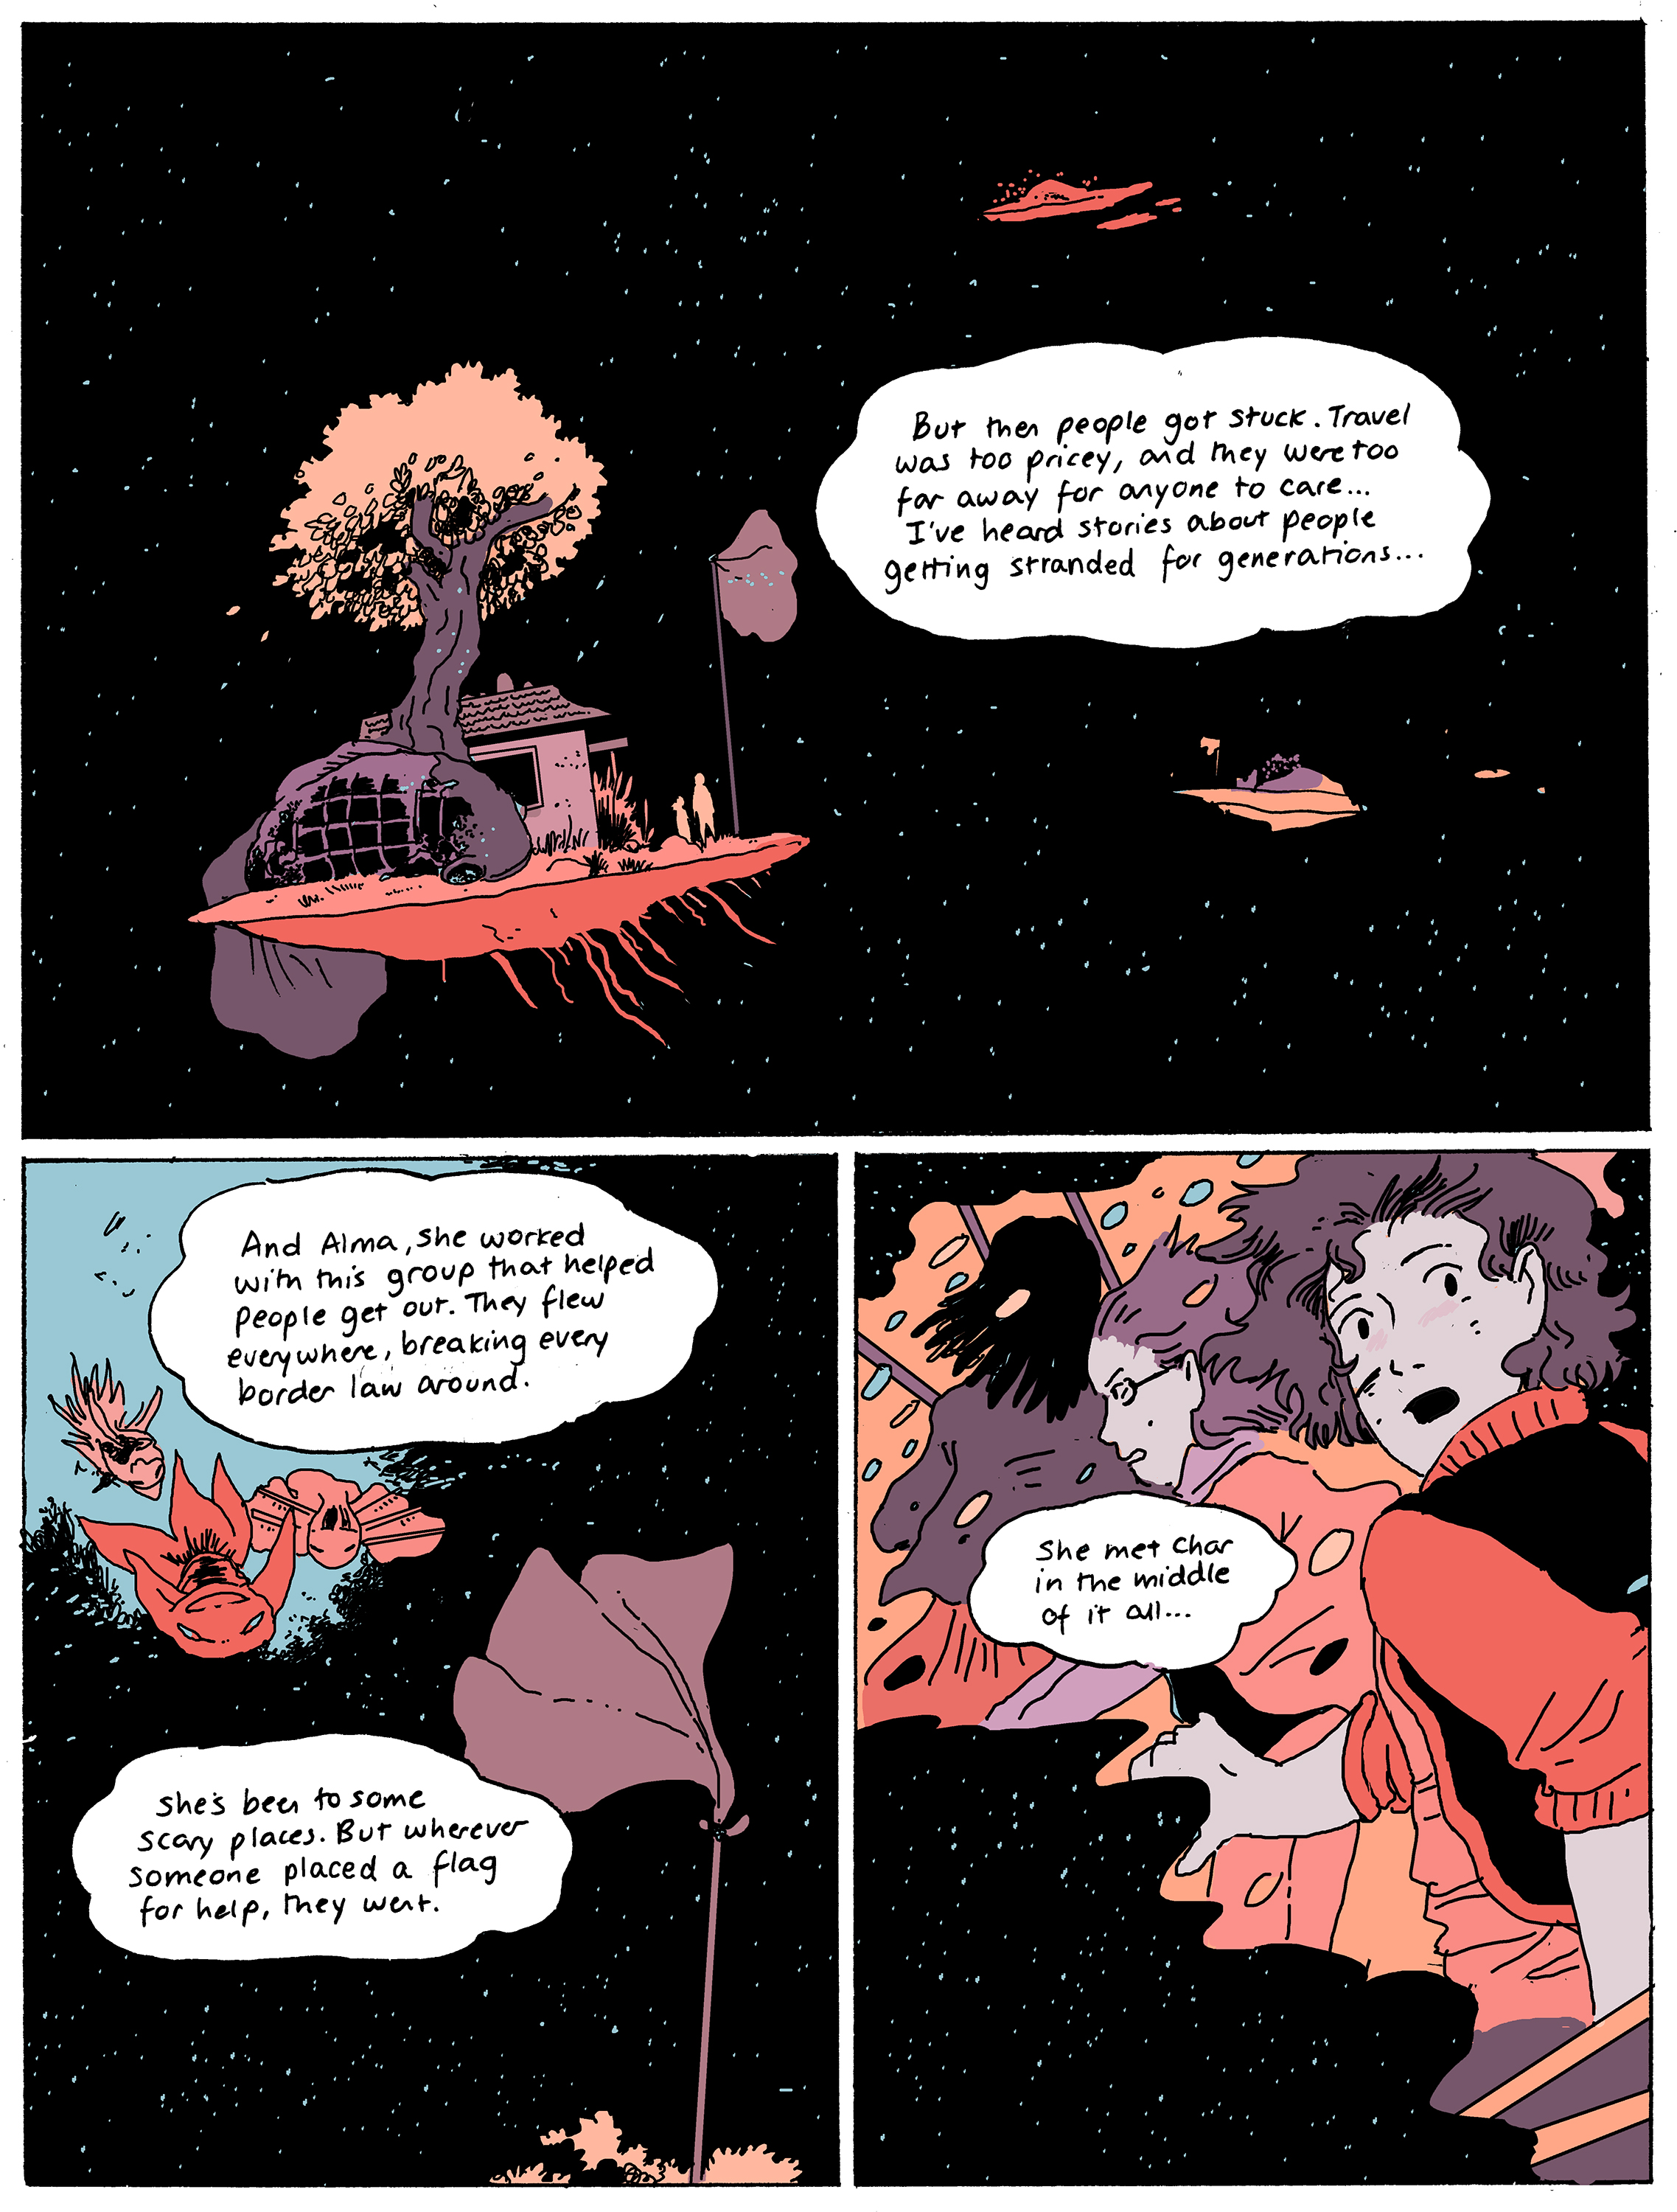 chapter09_page12.jpg